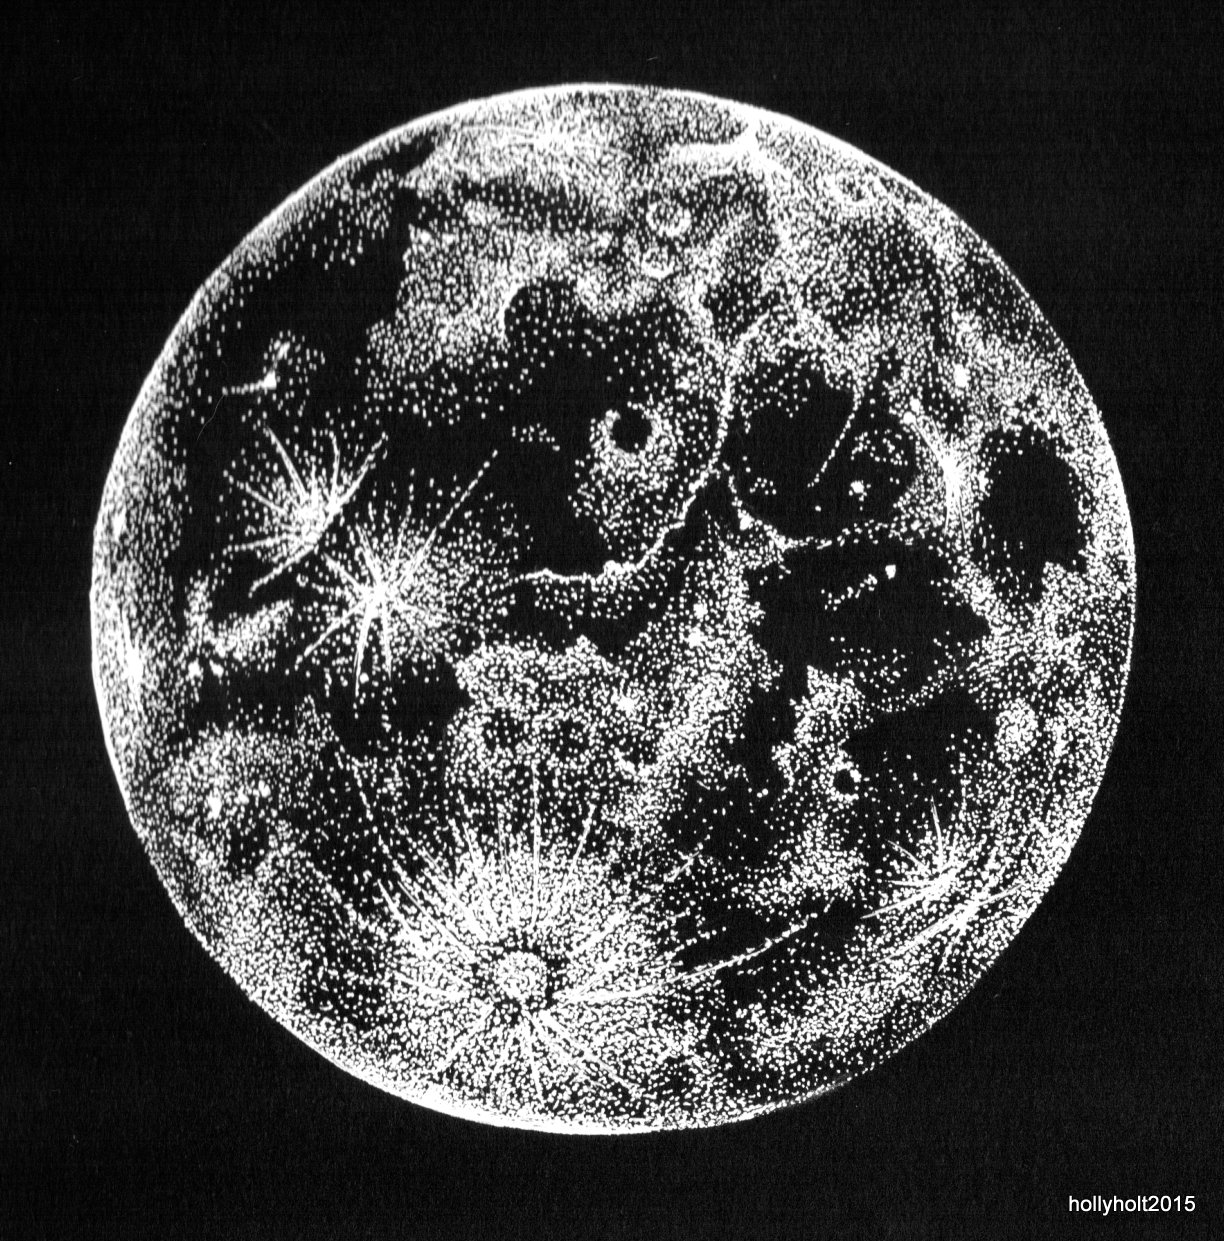 Full Moon Drawing Black And White For Illustrative Purposes Only October 2015